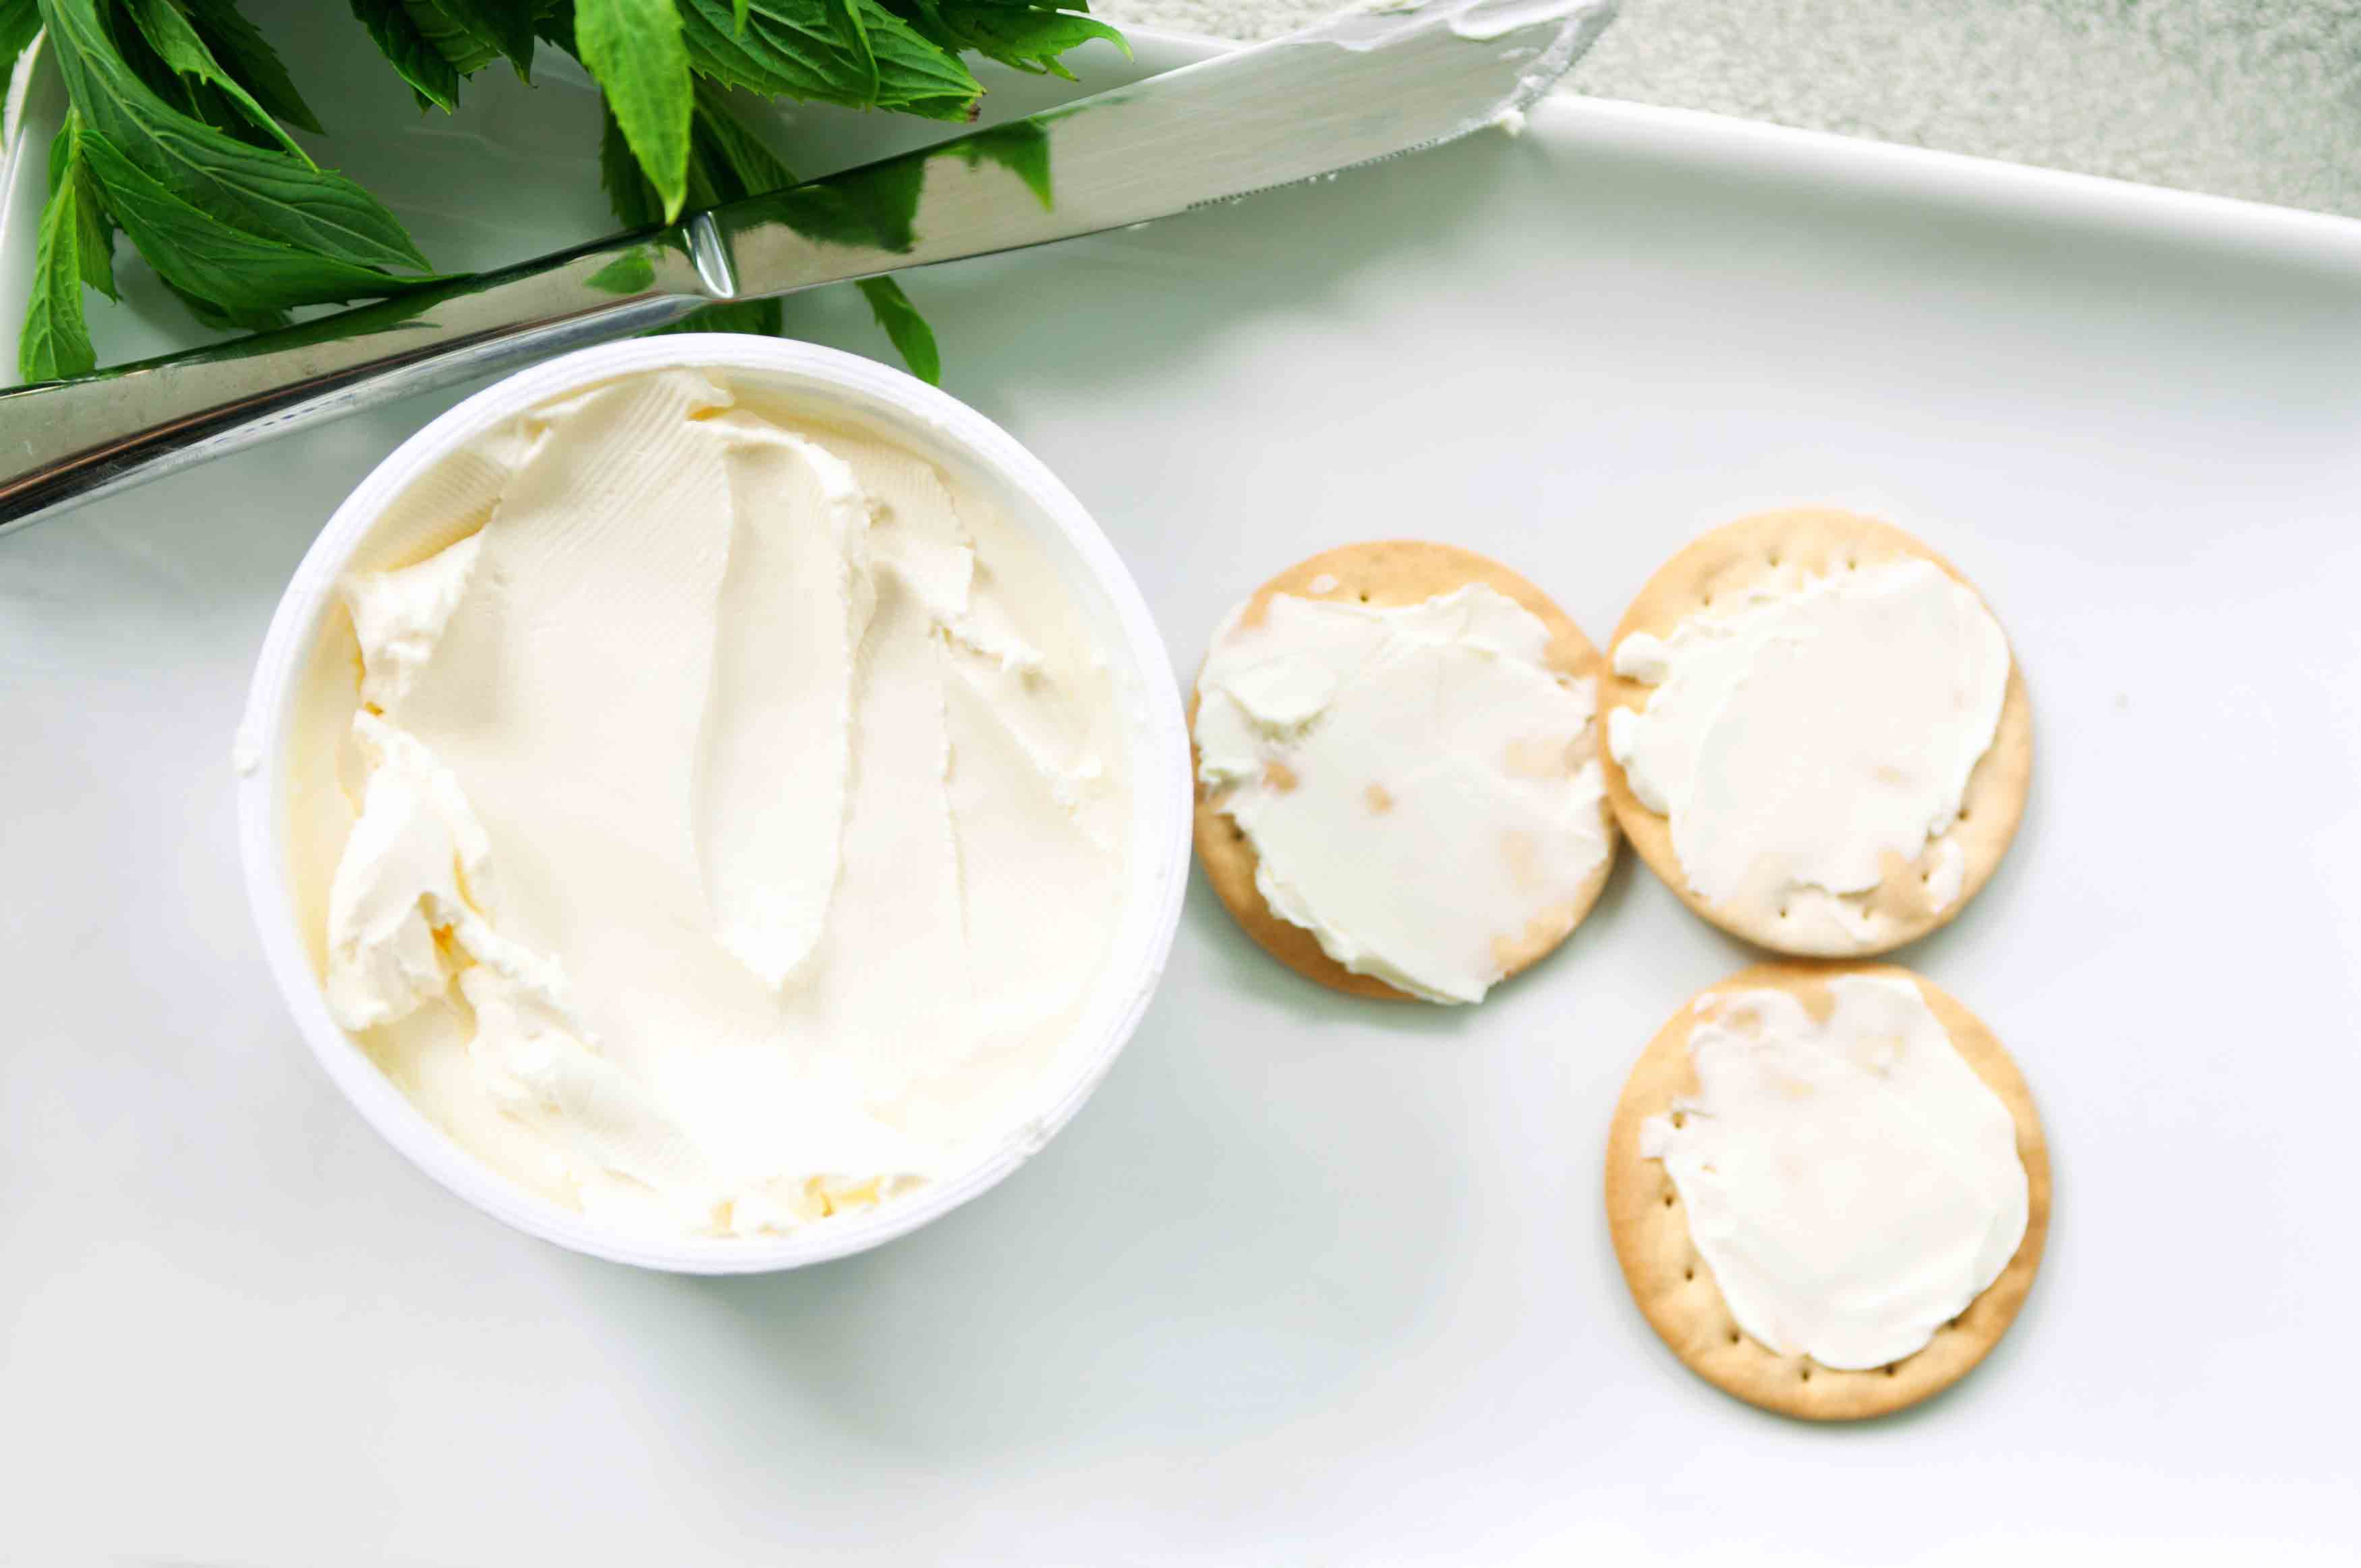 Cream cheese on crackers as a ricotta cheese substitute